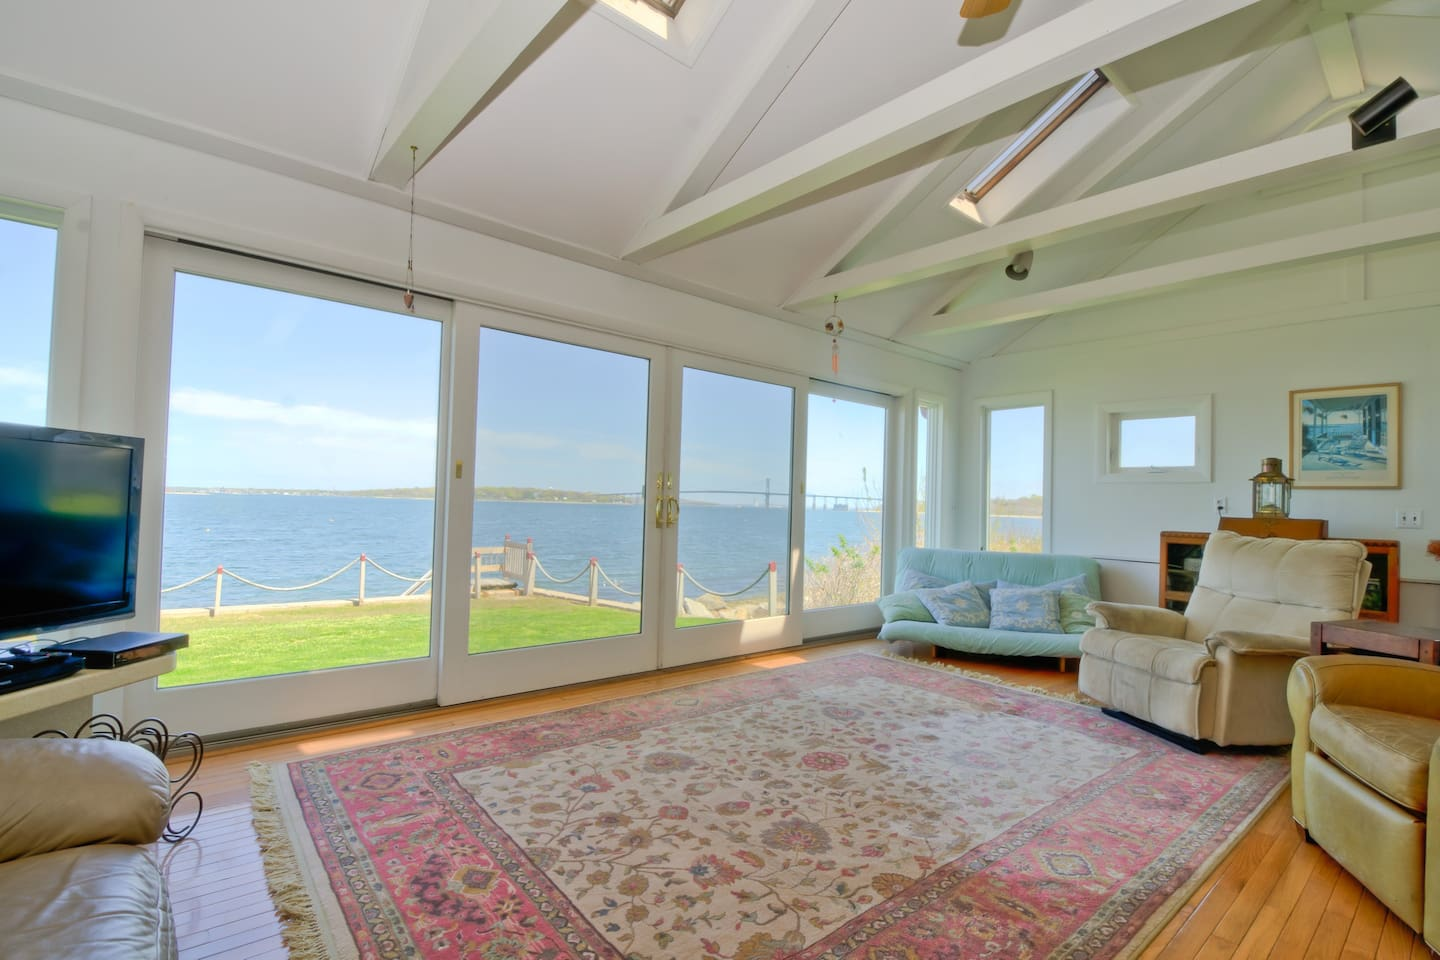 Living room with large sliding glass doors that open onto backyard and bay